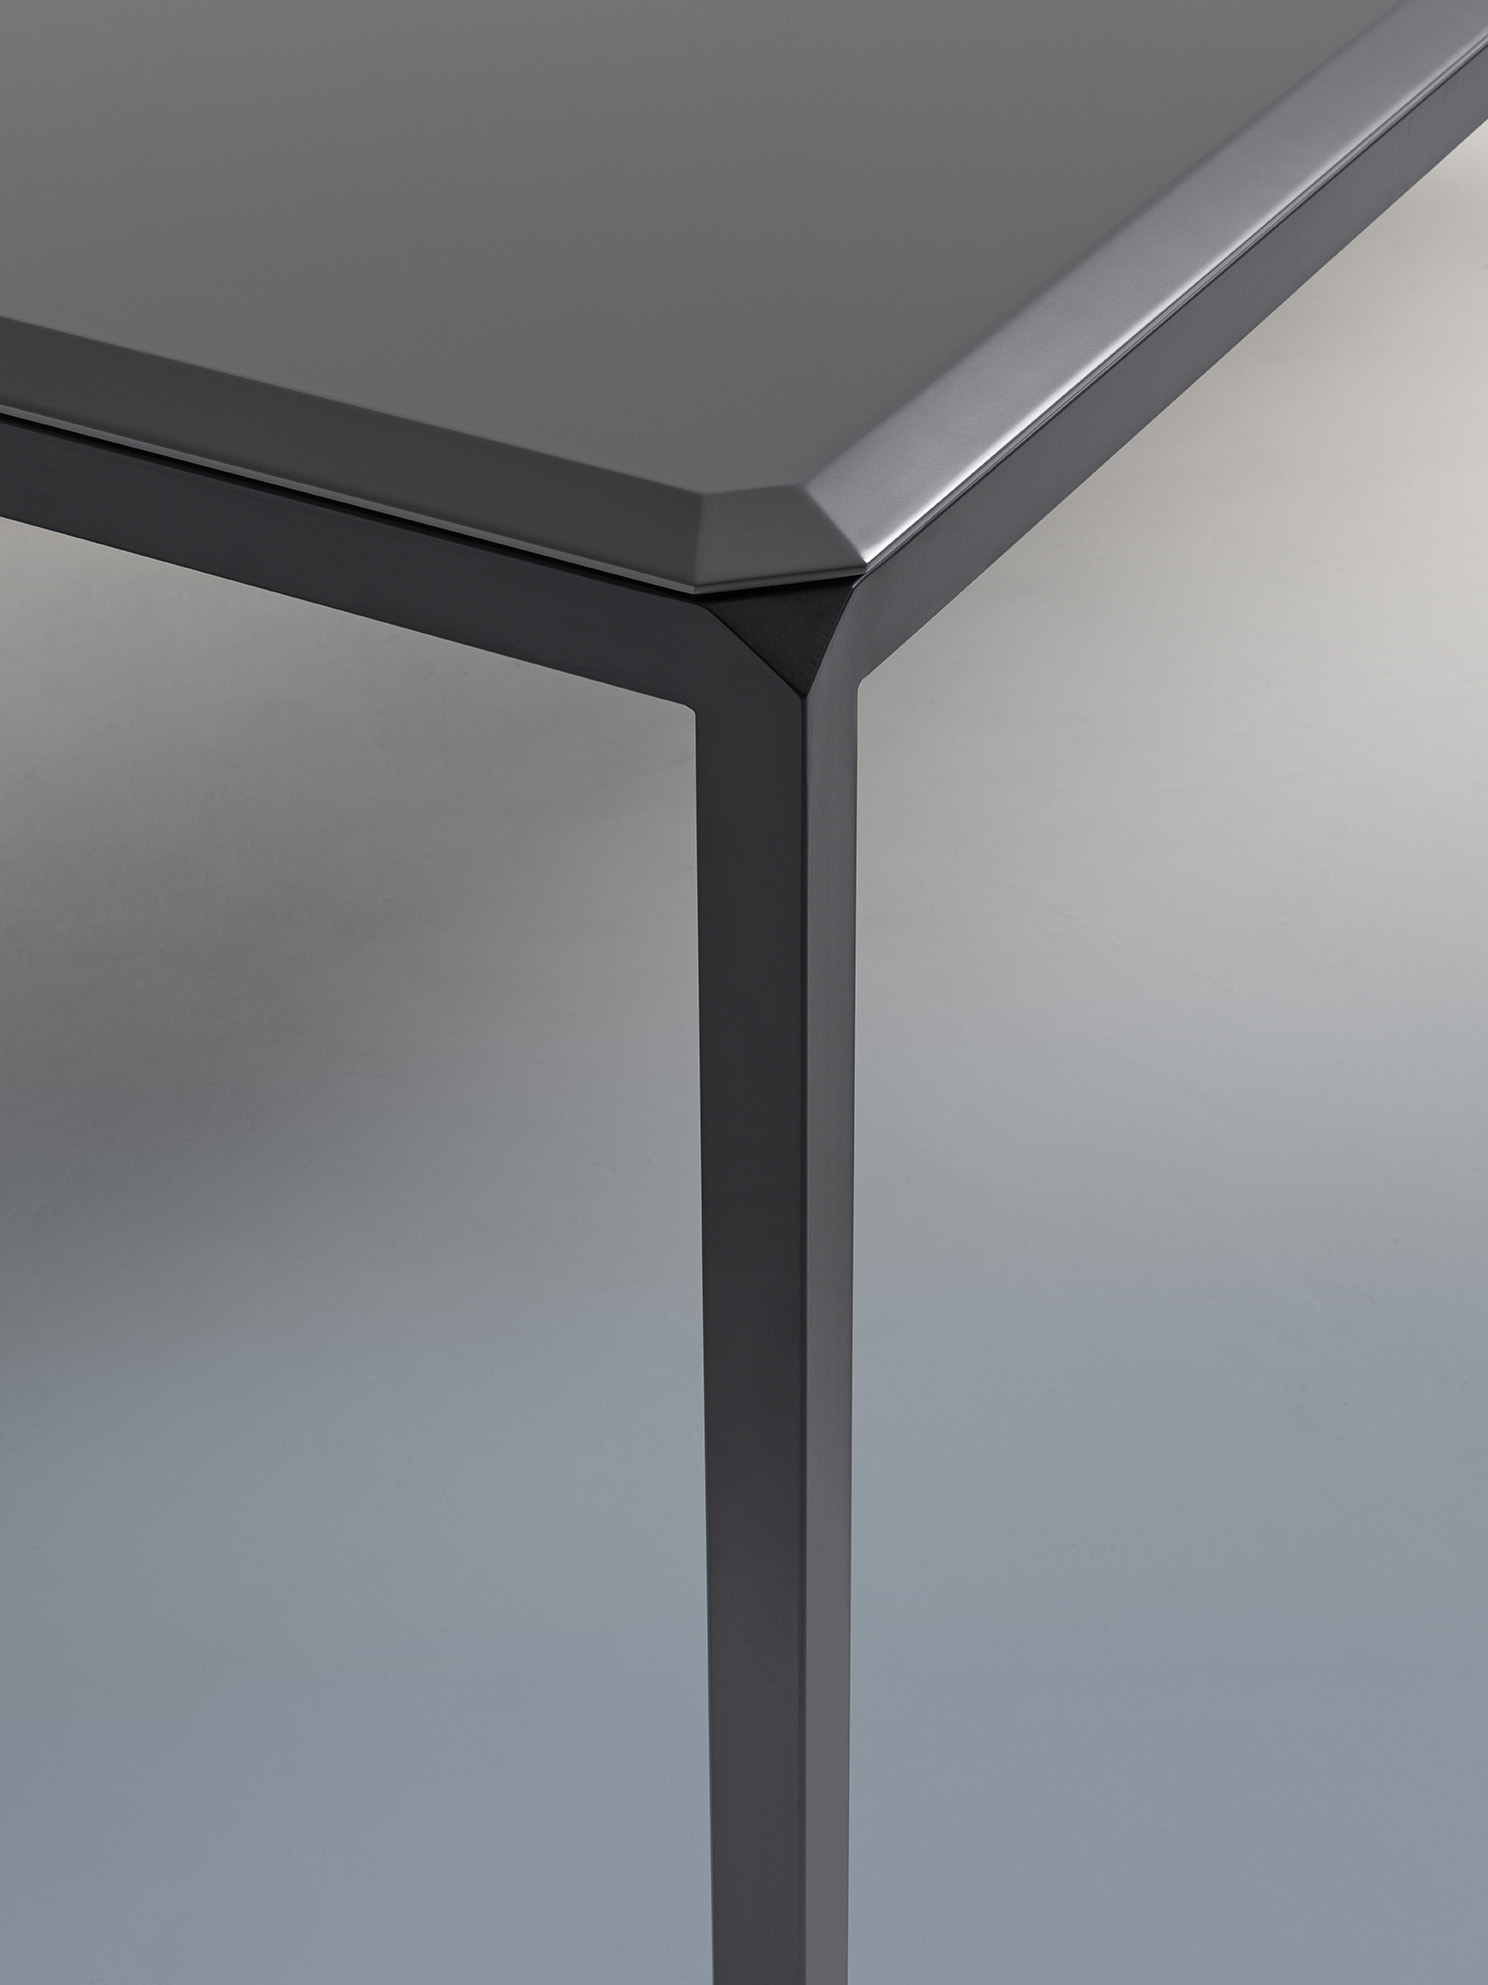 Bebop Dining Table - The Bebop table stands out for the attention to detail, quality workmanship, and the contrasting industrial iron frame and fine marble or lacquered top. It has a steel structure, with a top in marble or lacquered wood featuring four rounded corners that give boldness to details. The larger table has top options only in Scratchproof Lacquered MDF, Bianco Michelangelo Marble and Calacatta Oro Marble. A range of materials, colours and finishes are available in a number of combinations.    | Matter of Stuff